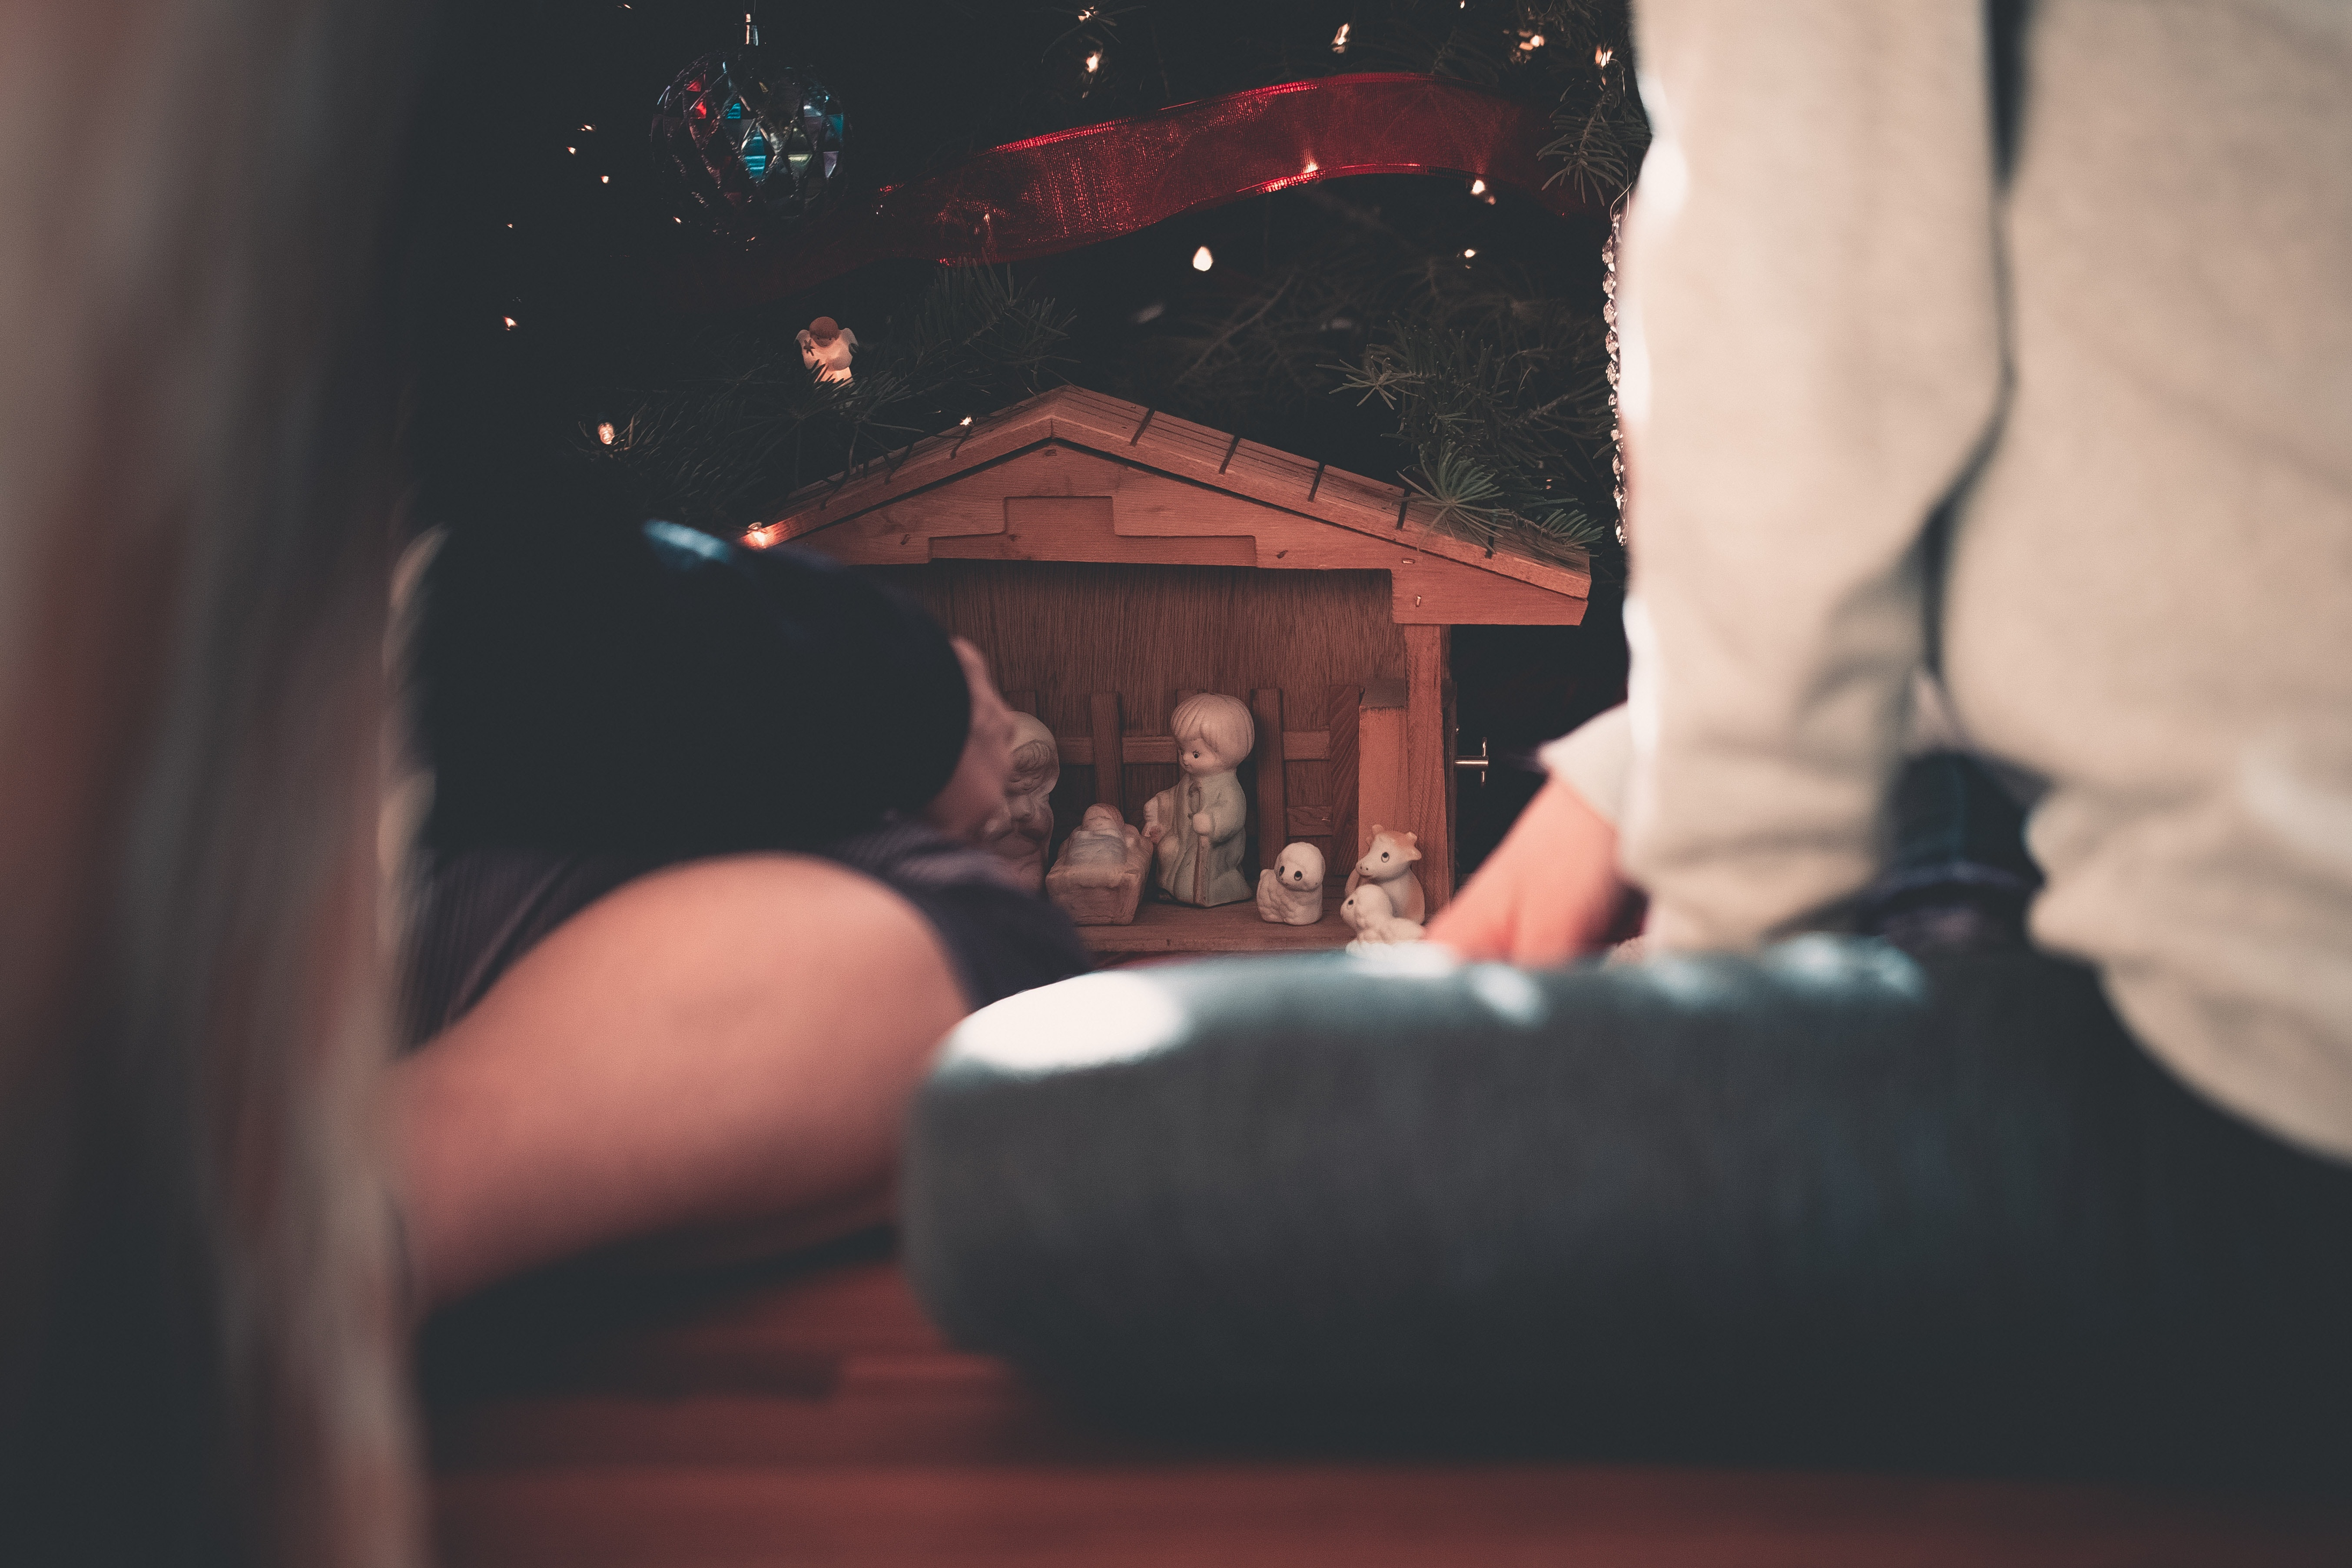 The Foot Stop Christmas message